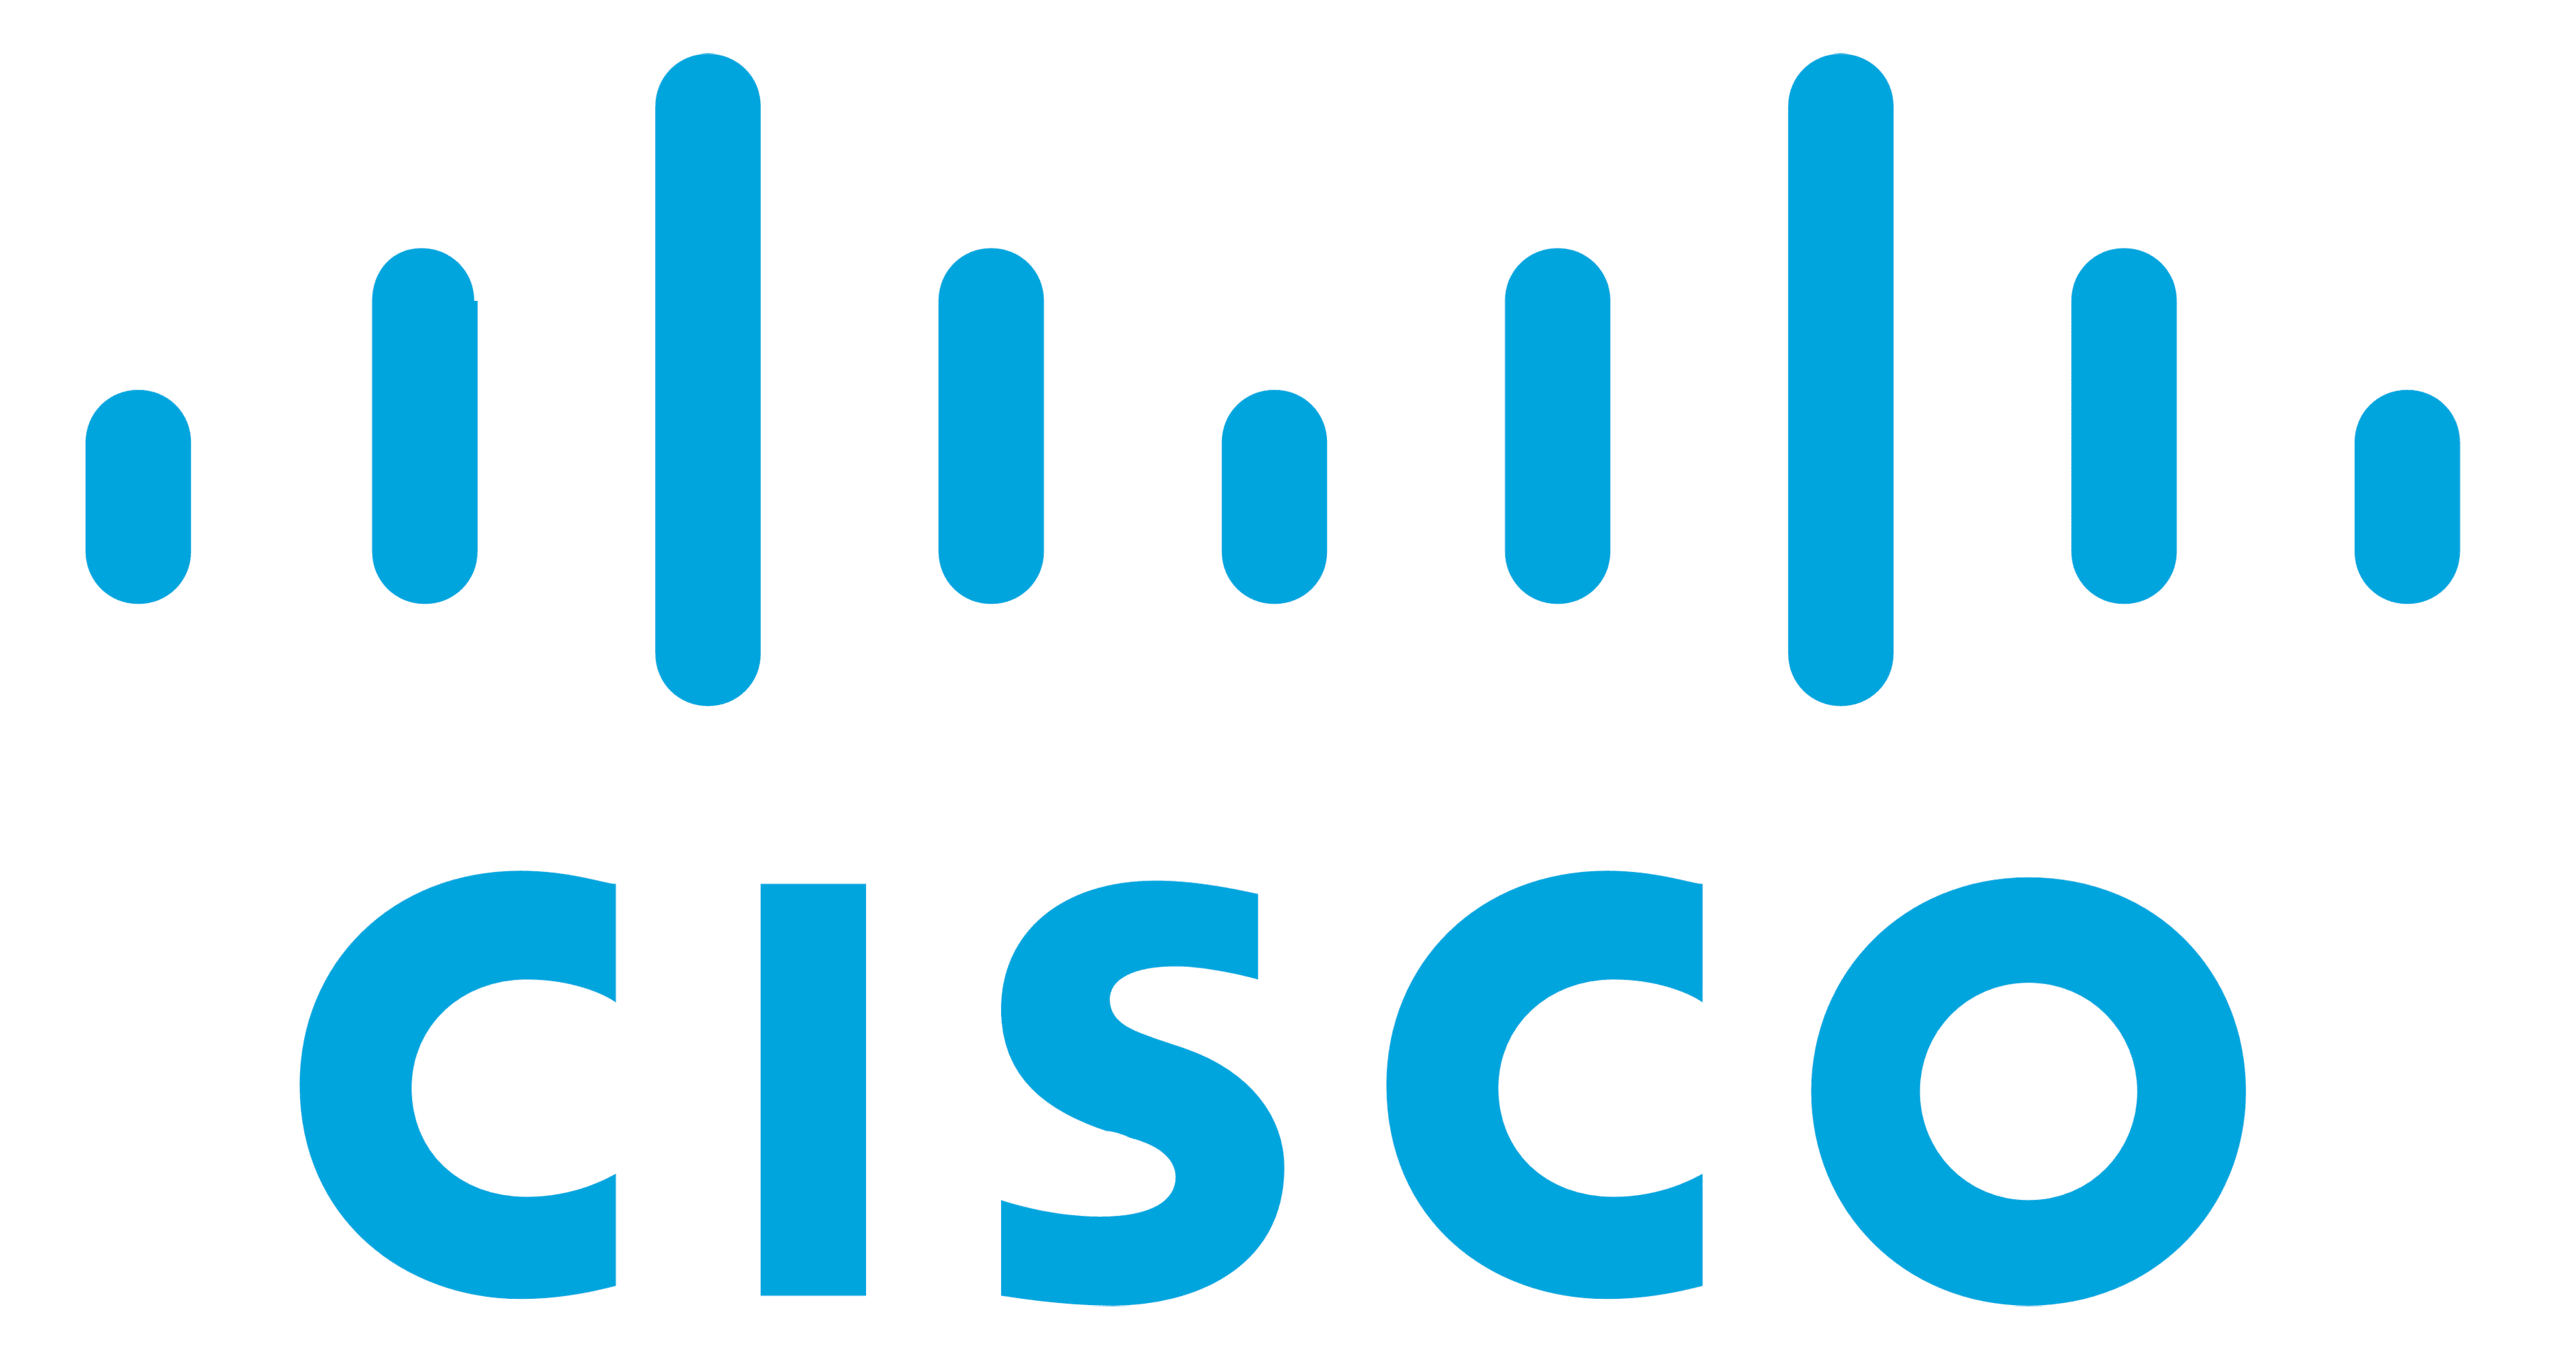 Car And Their Logos >> Cisco Logo, Cisco Symbol Meaning, History and Evolution